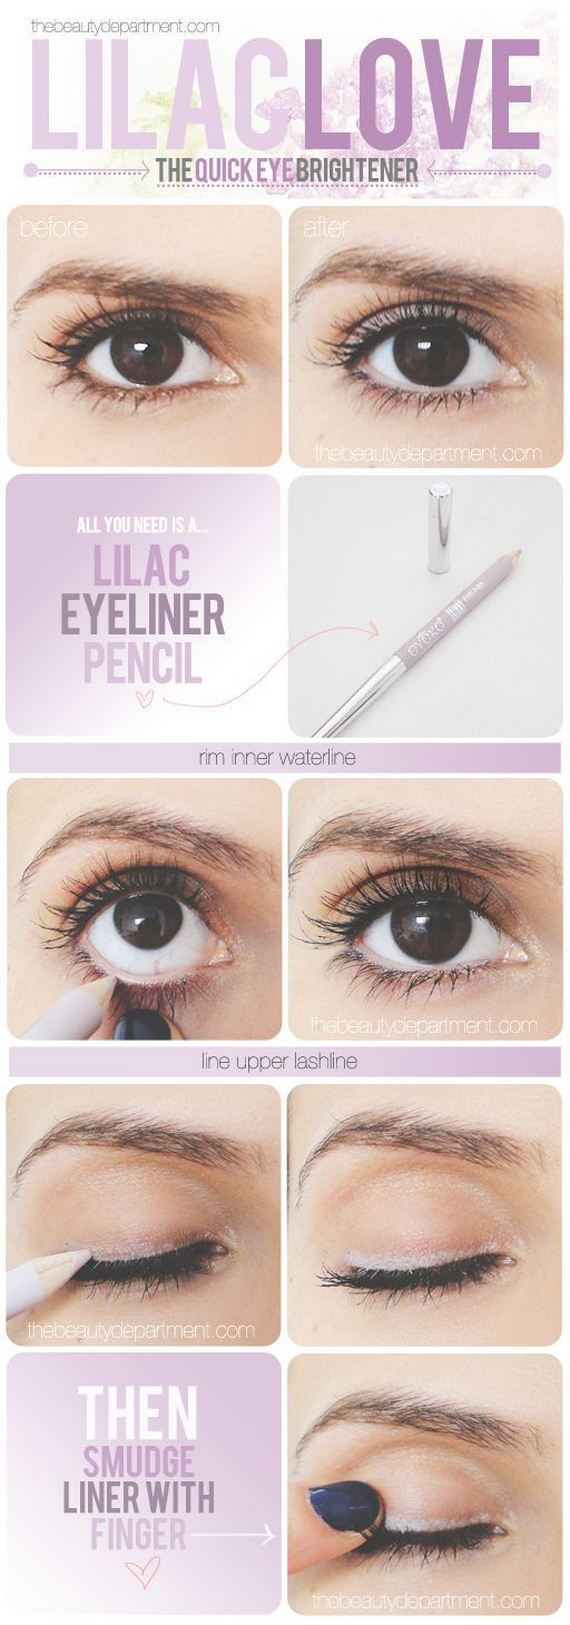 06-Fun-Eyeliner-Tutorials